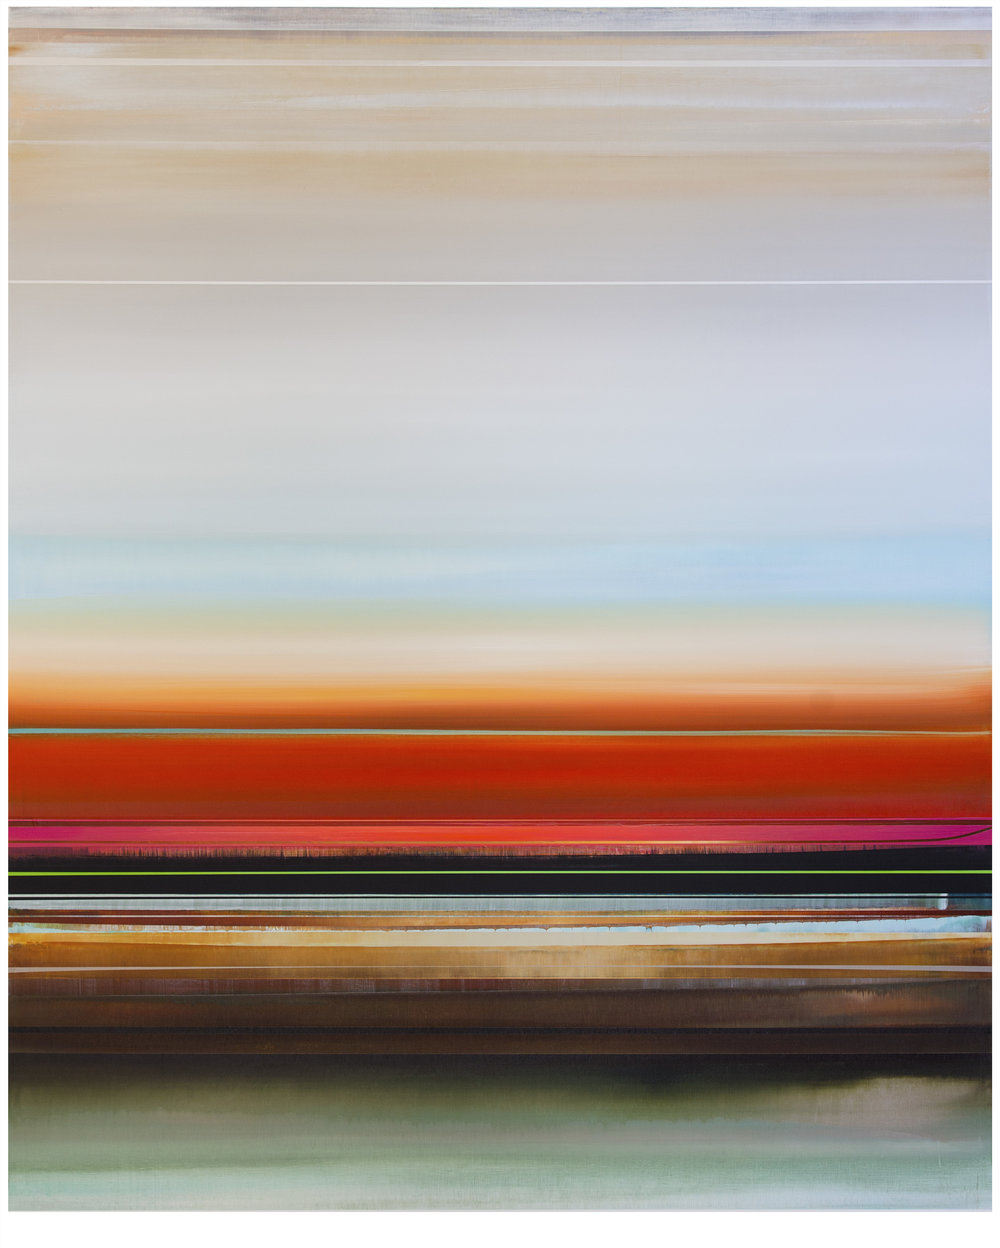 Micah Crandall-Bear, b.1980 (USA)  Title: Strandline  Dimension: 152.40 x 121.92 cm  Year: 2017